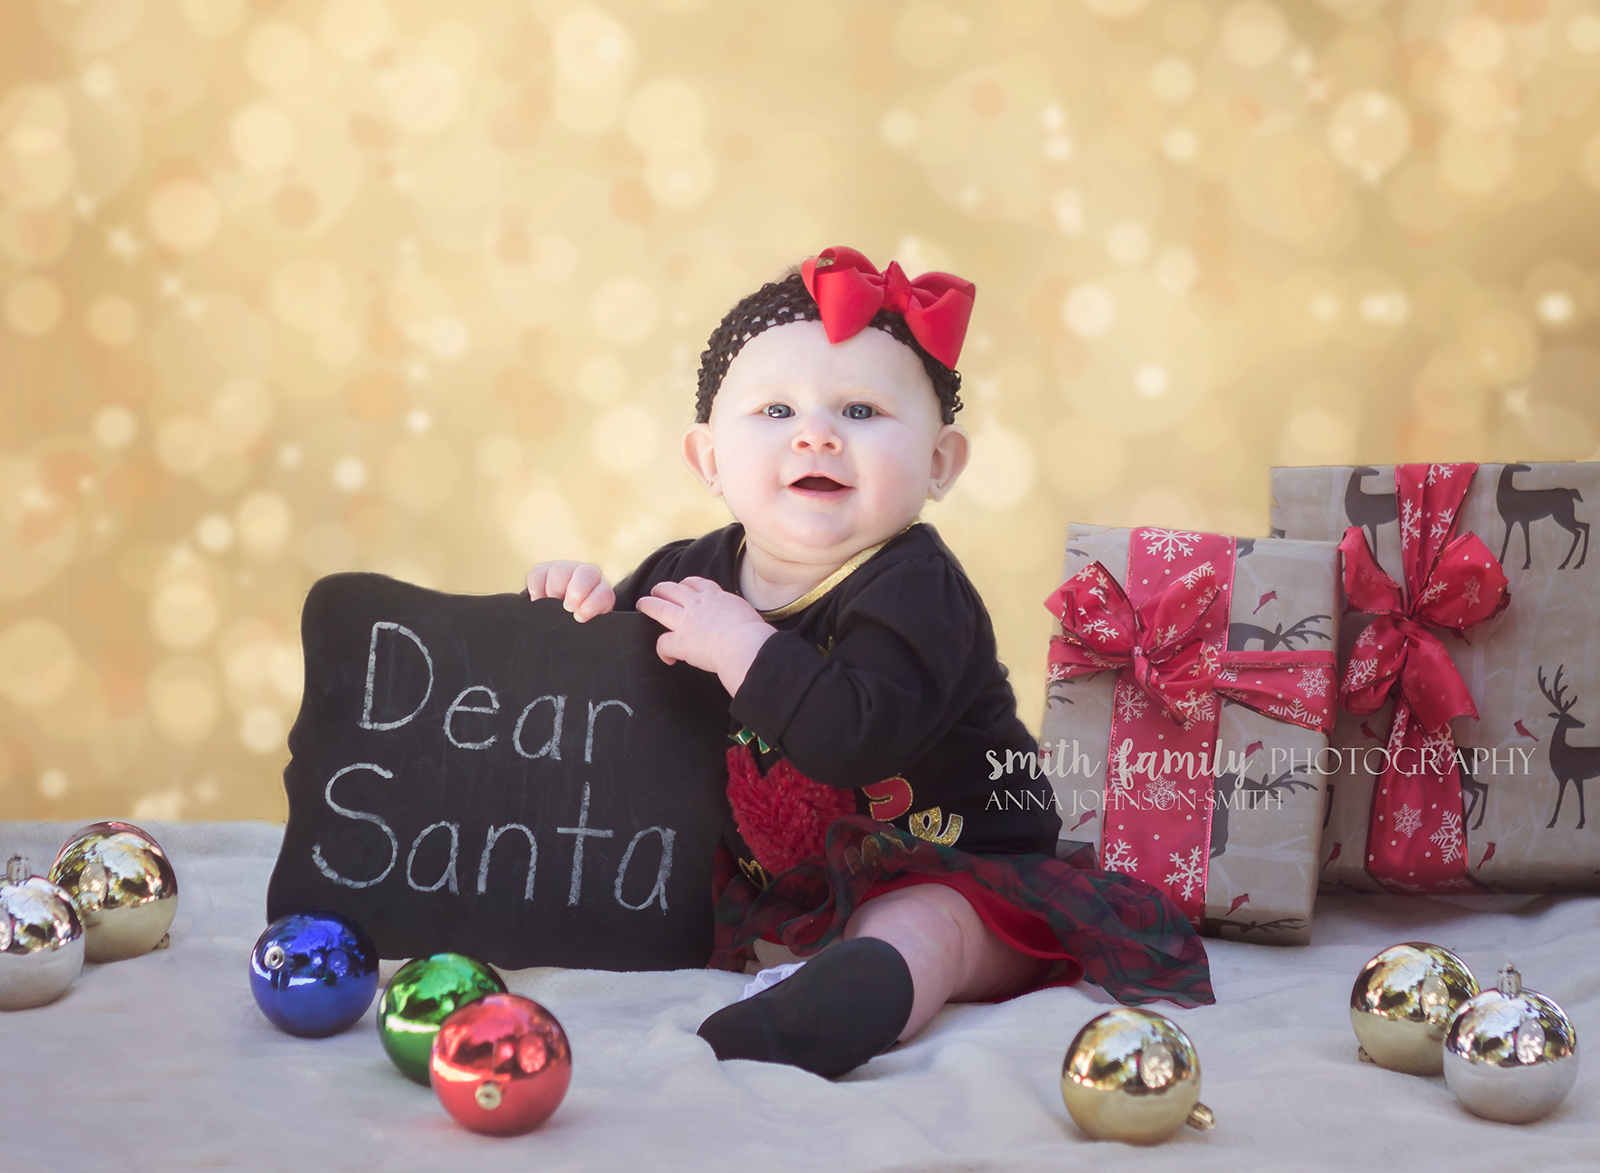 December 2015 - Saira is 6 months old!